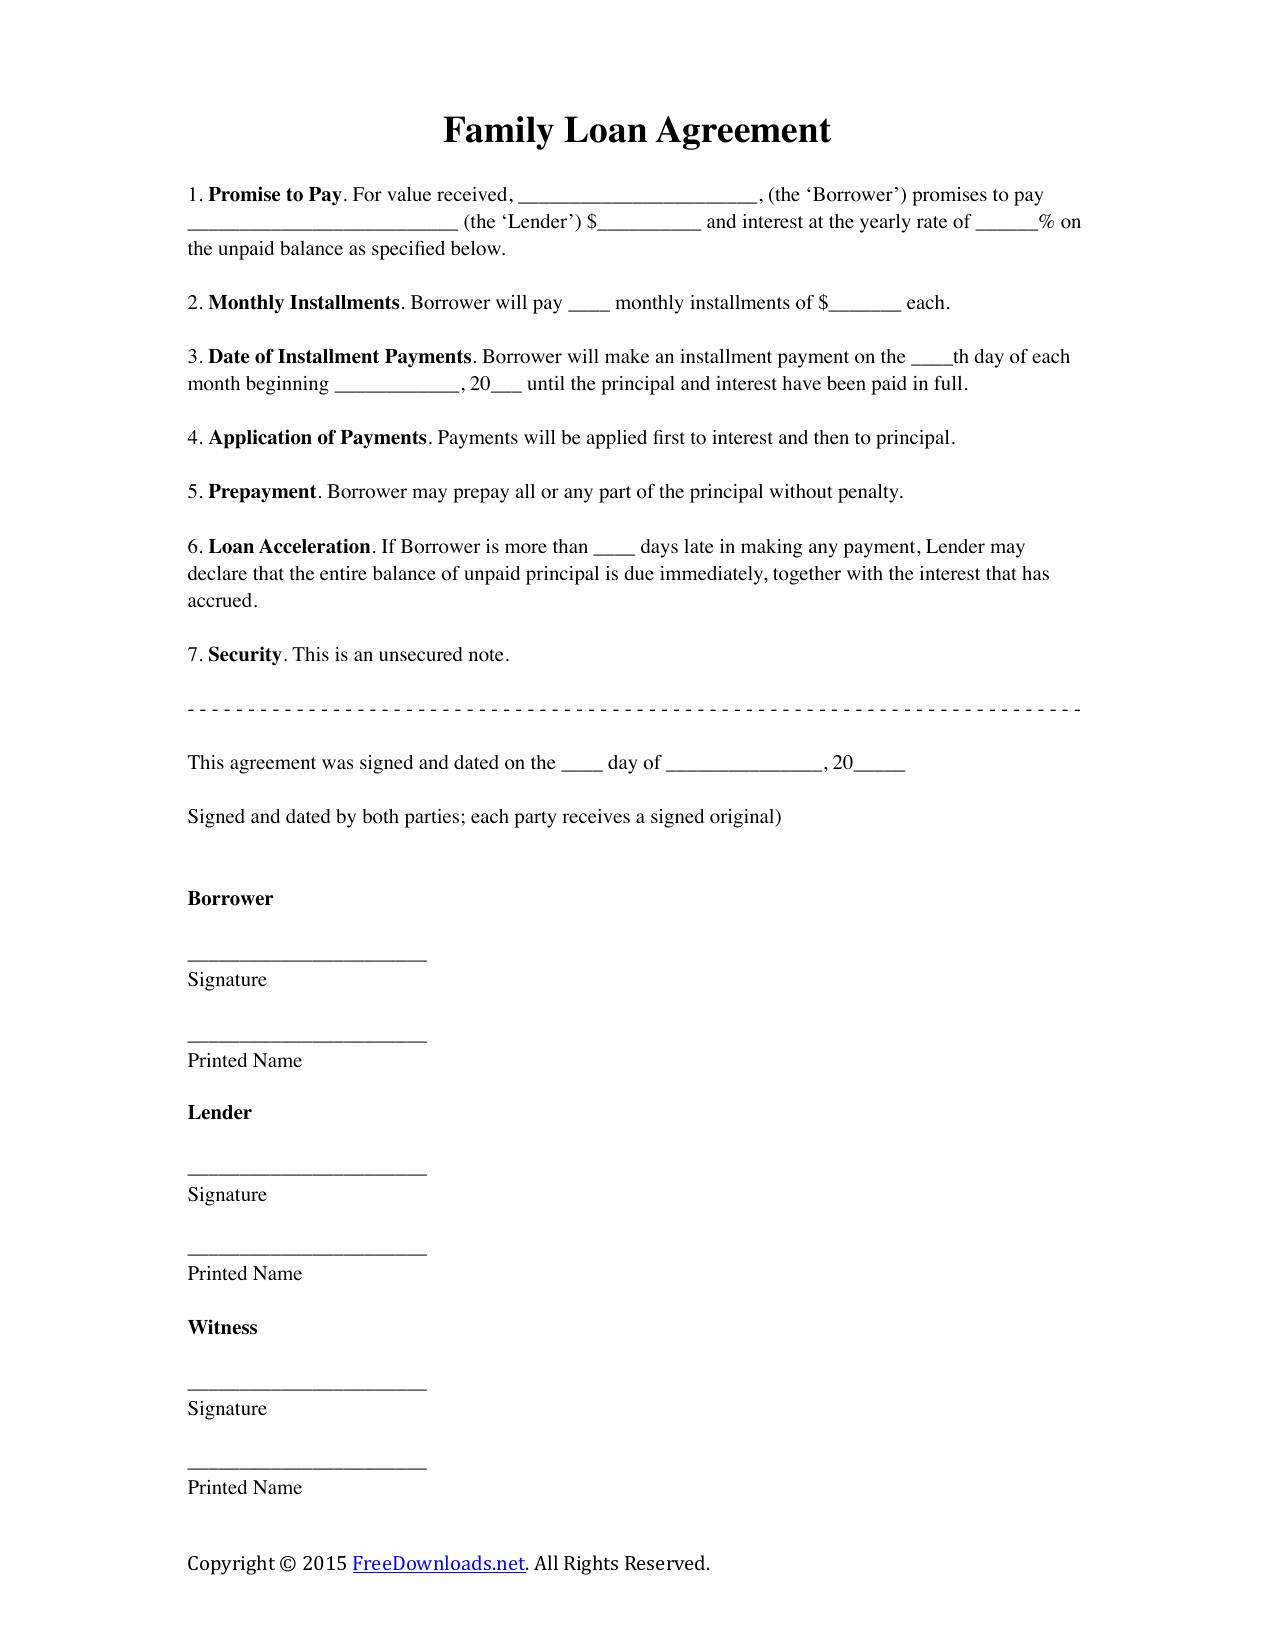 Family Loan Agreement Template Beautiful Download Family Loan Agreement Template Pdf Rtf